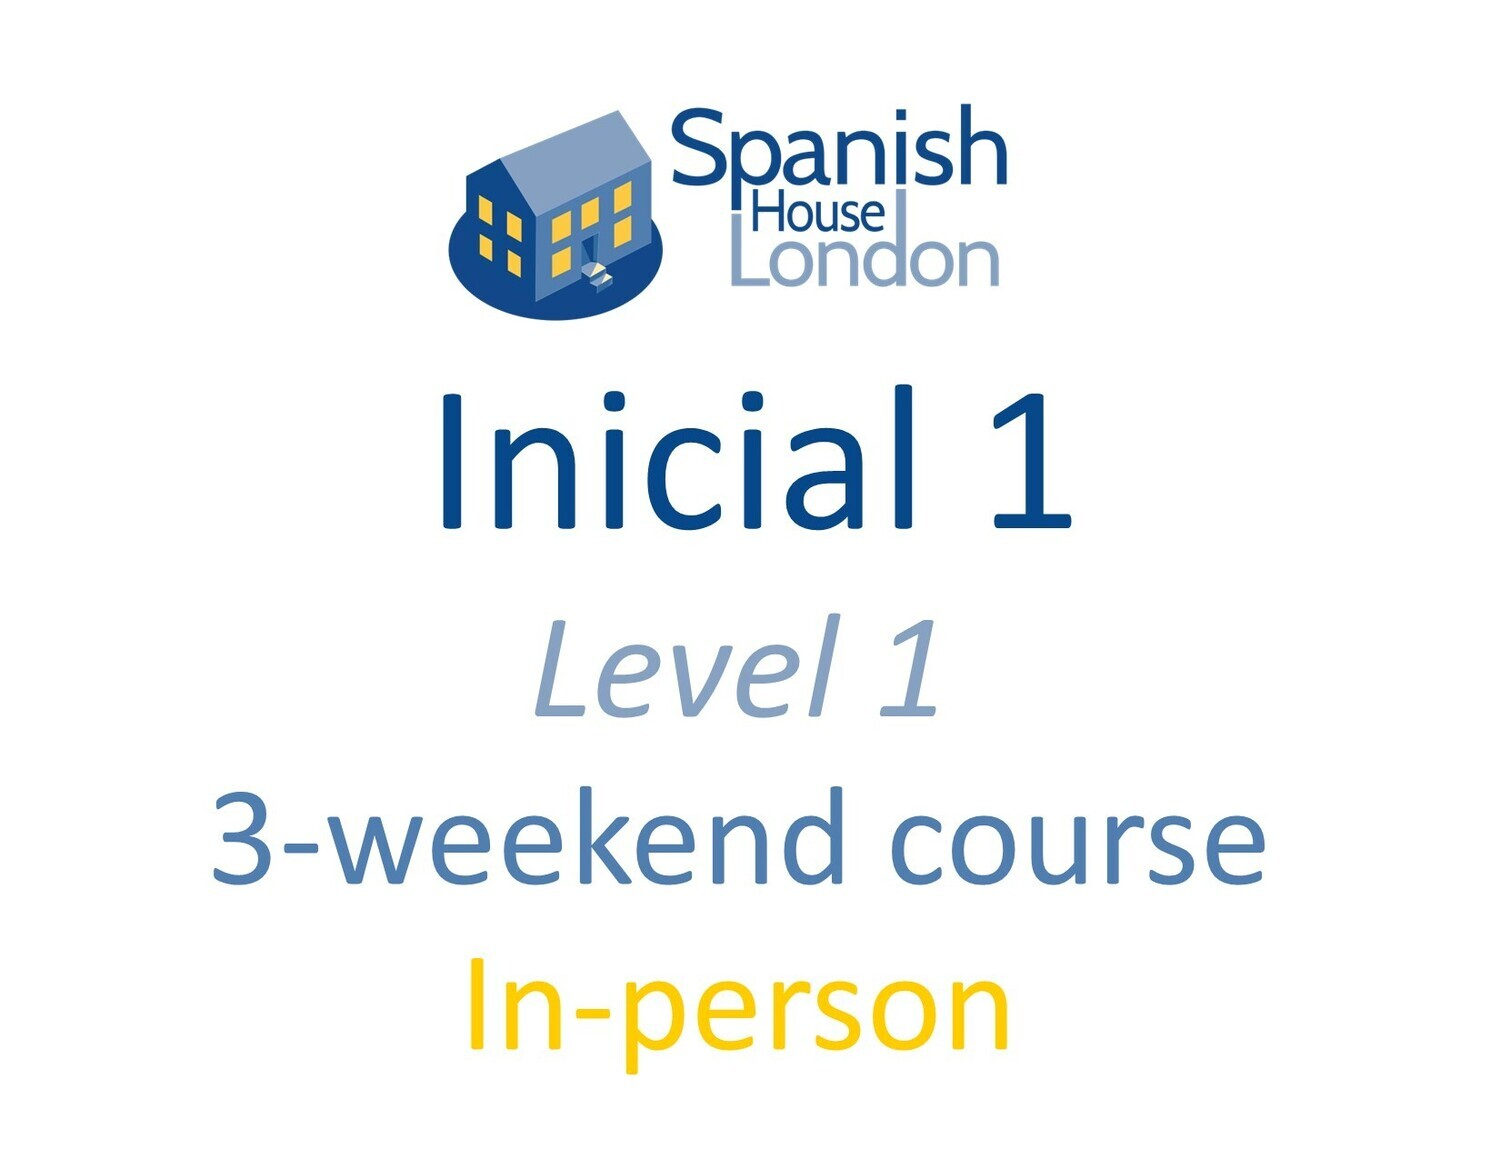 Weekend-Intensive Inicial 1 Course starting on 22nd October at 7pm in Clapham North